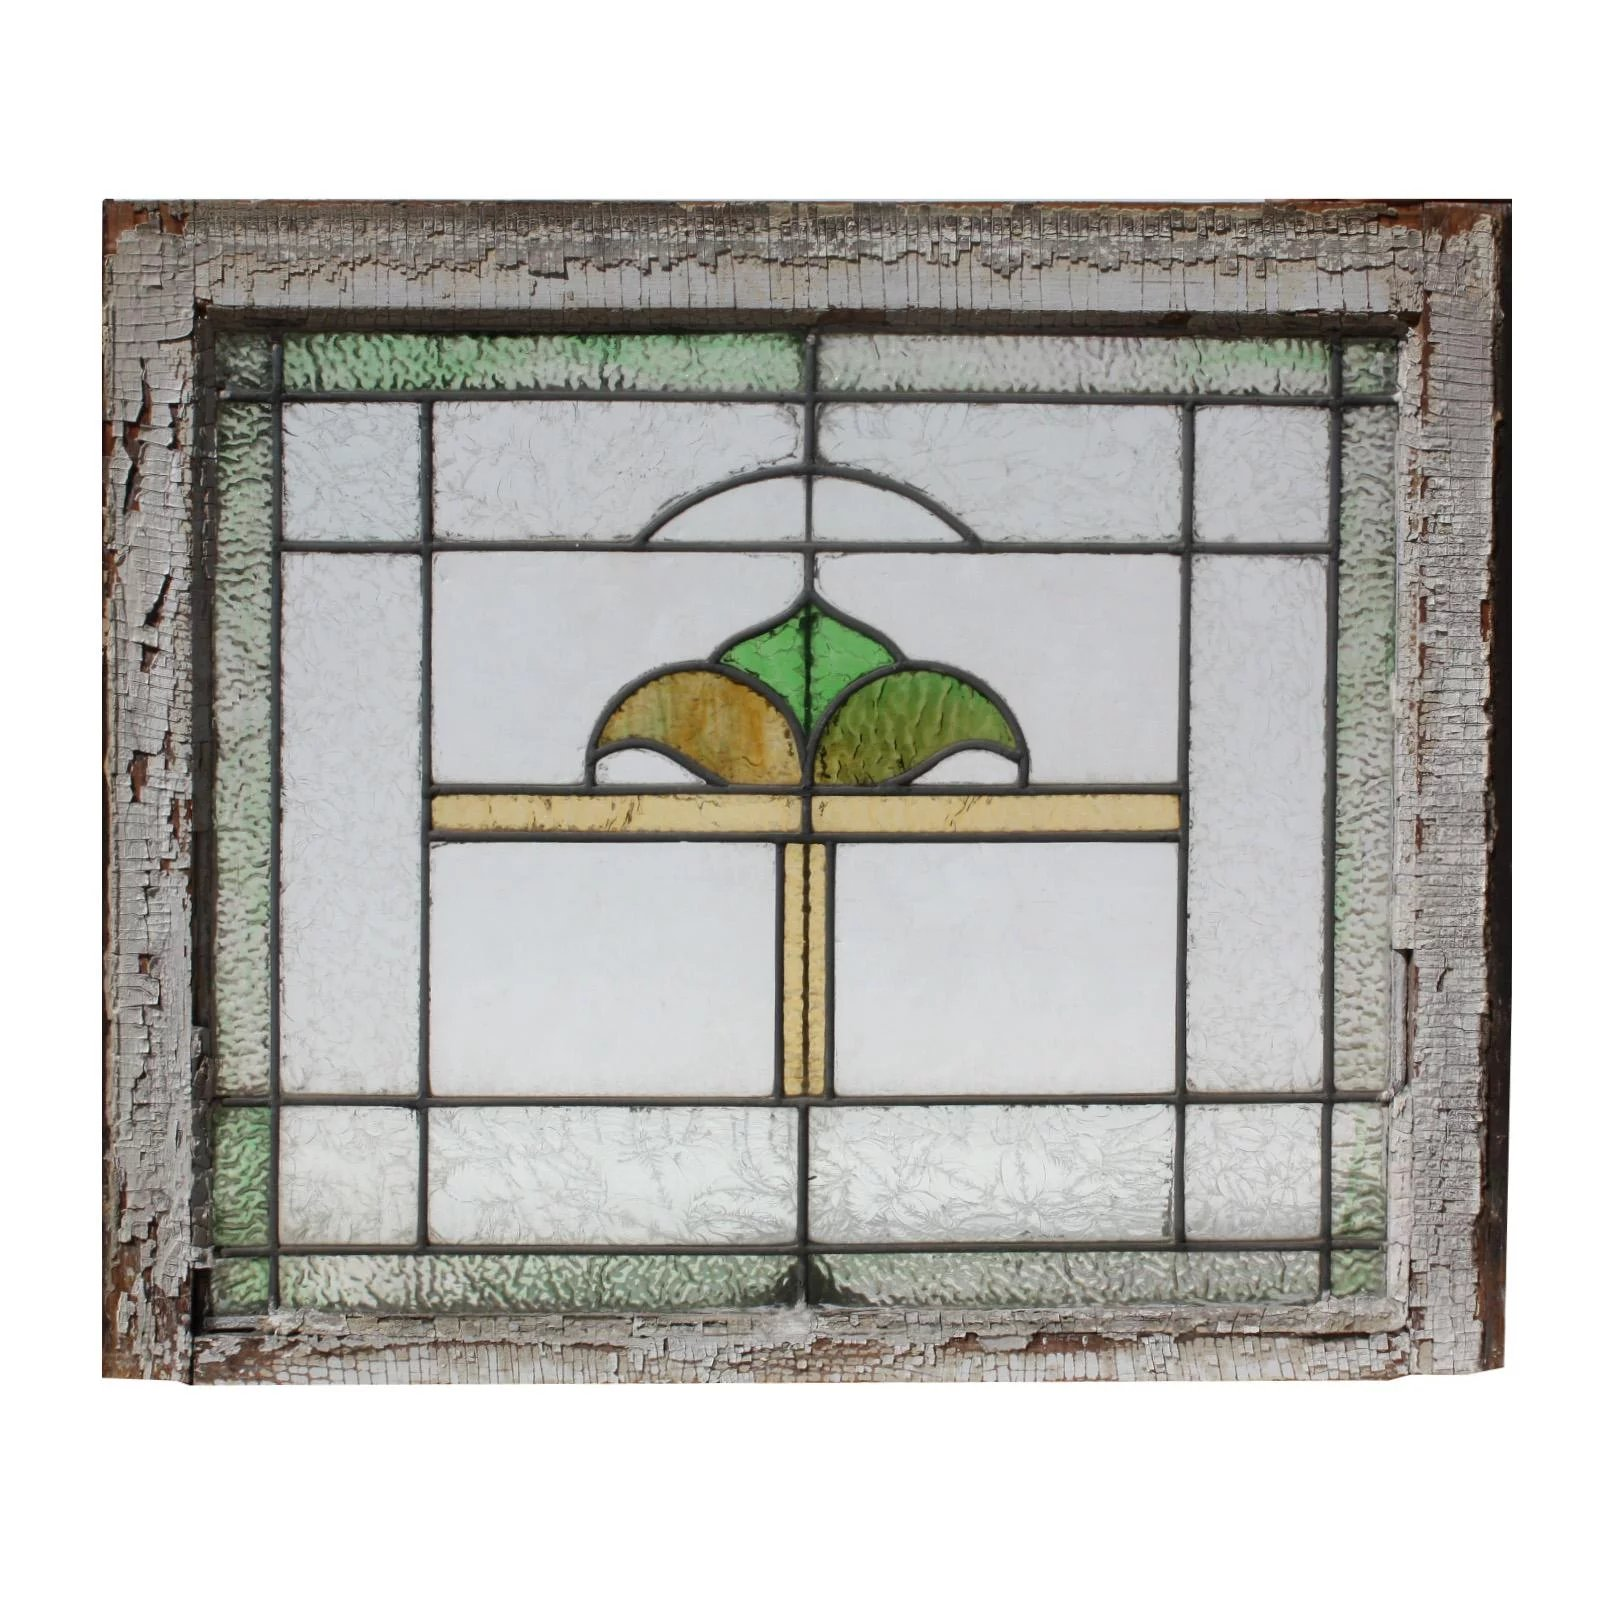 Antique American Stained Glass Windows Early 1900s